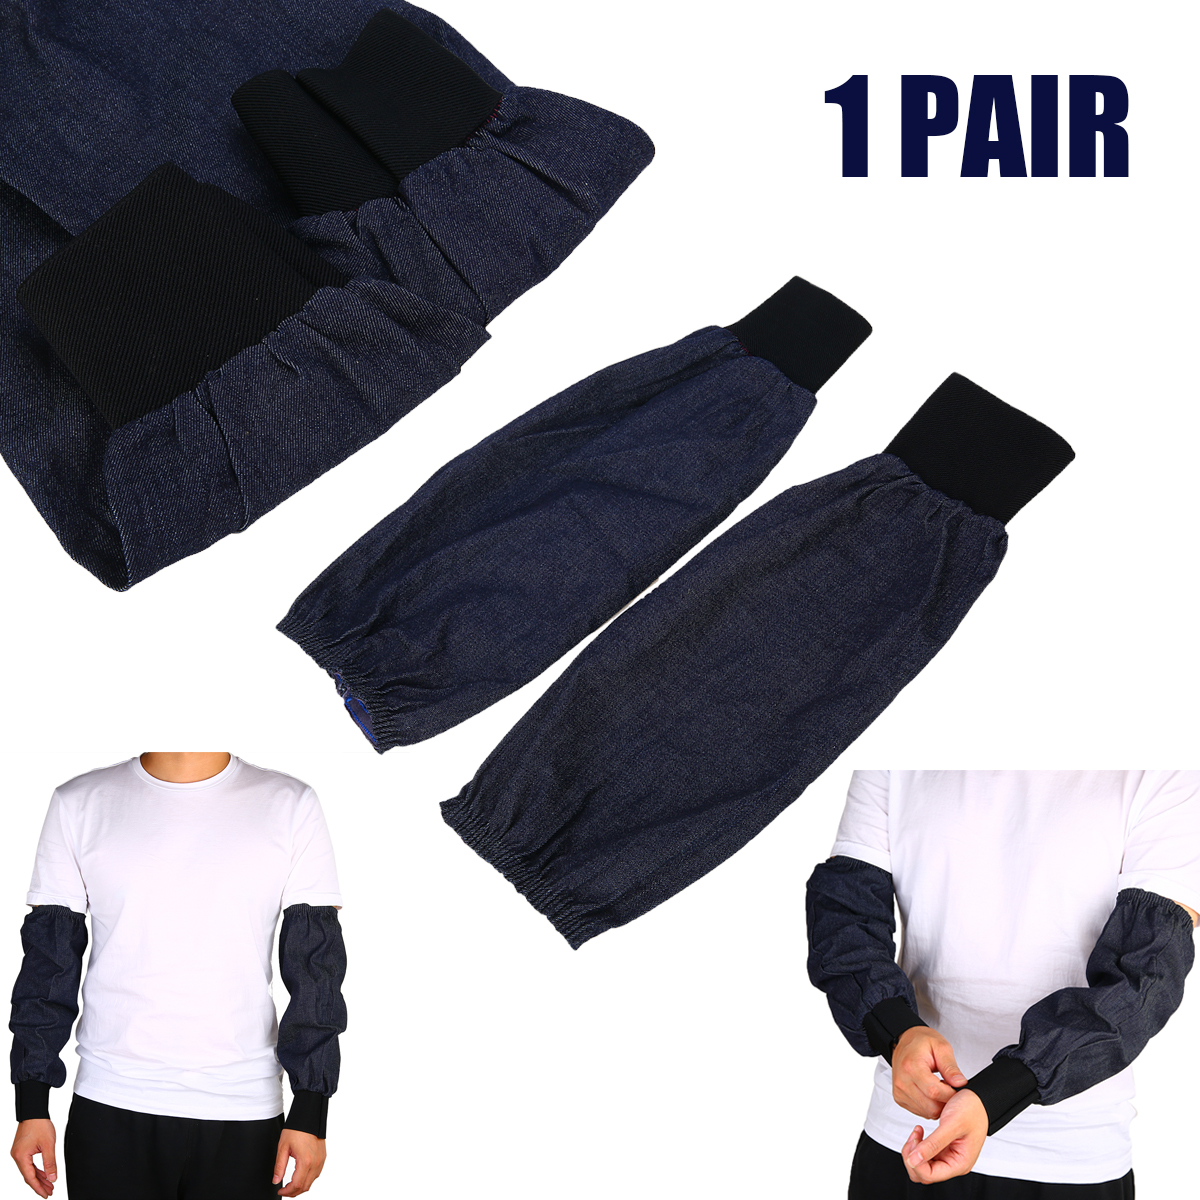 1 Pair Welding Protection Arm Sleeves Denim Working Safety Sleeves Handing Cut Resistant Heat Protect Arm Guard Welding Tools image